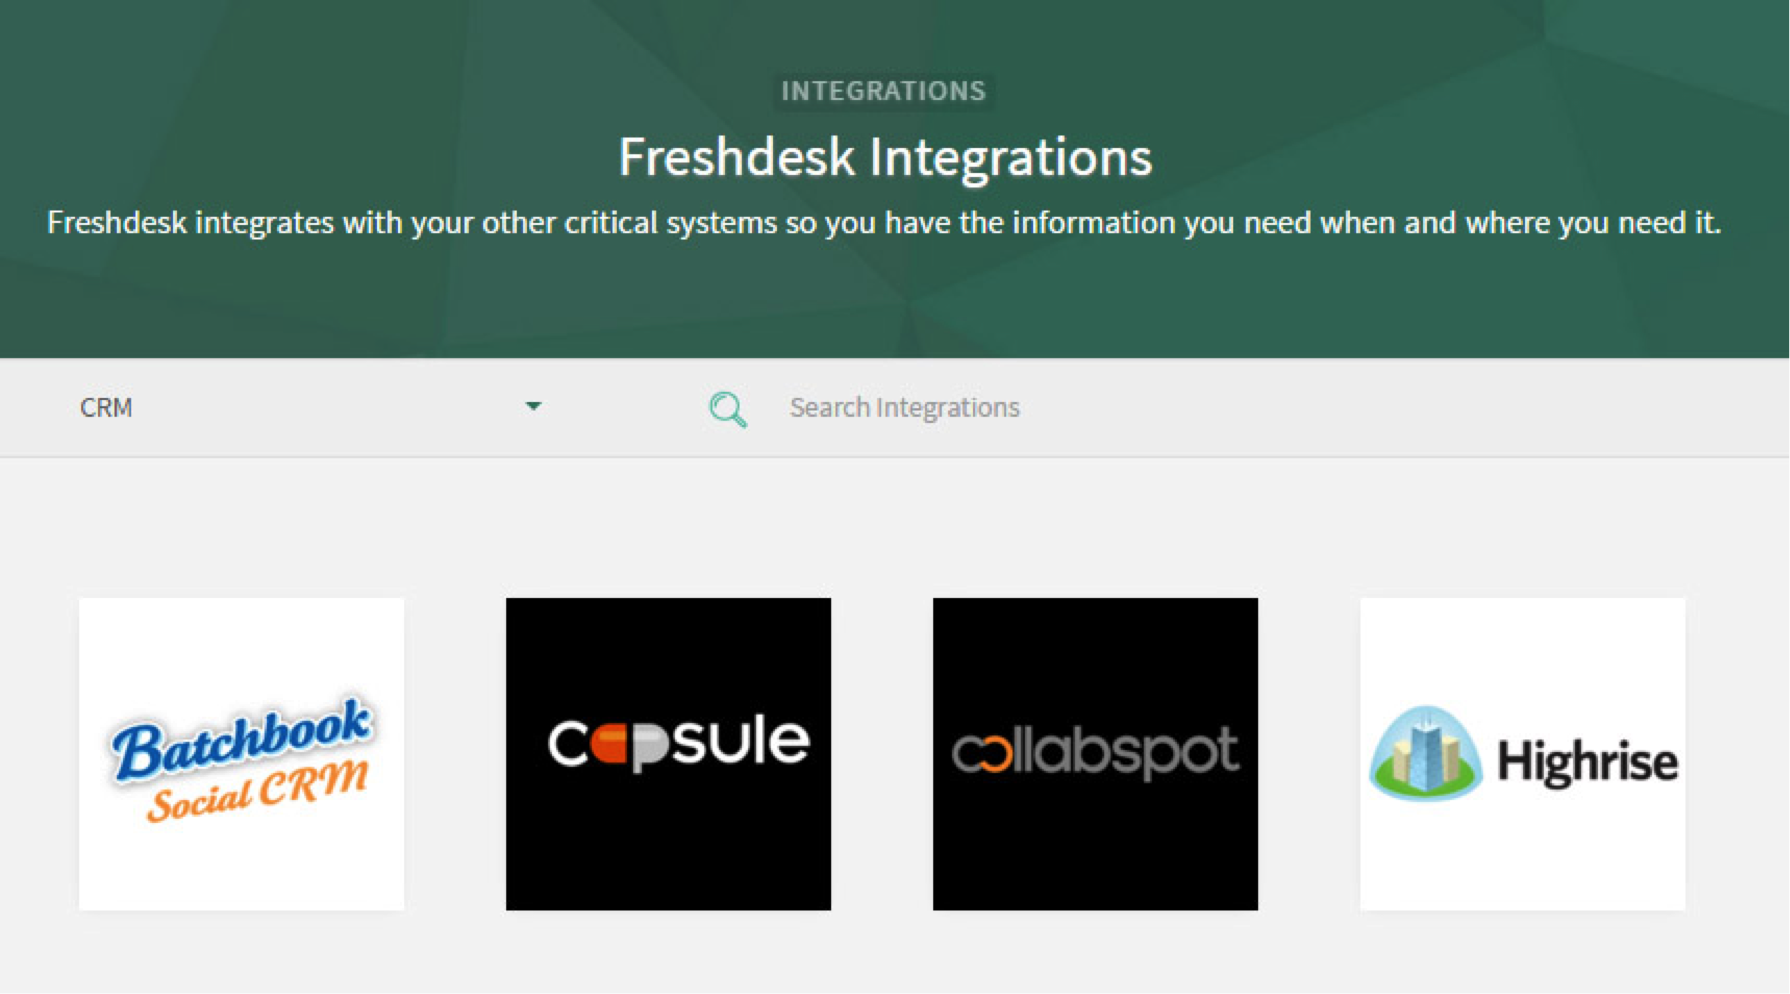 Like Freshdesk, you can work out an alliance partenership with top CRM apps that it integrates with.